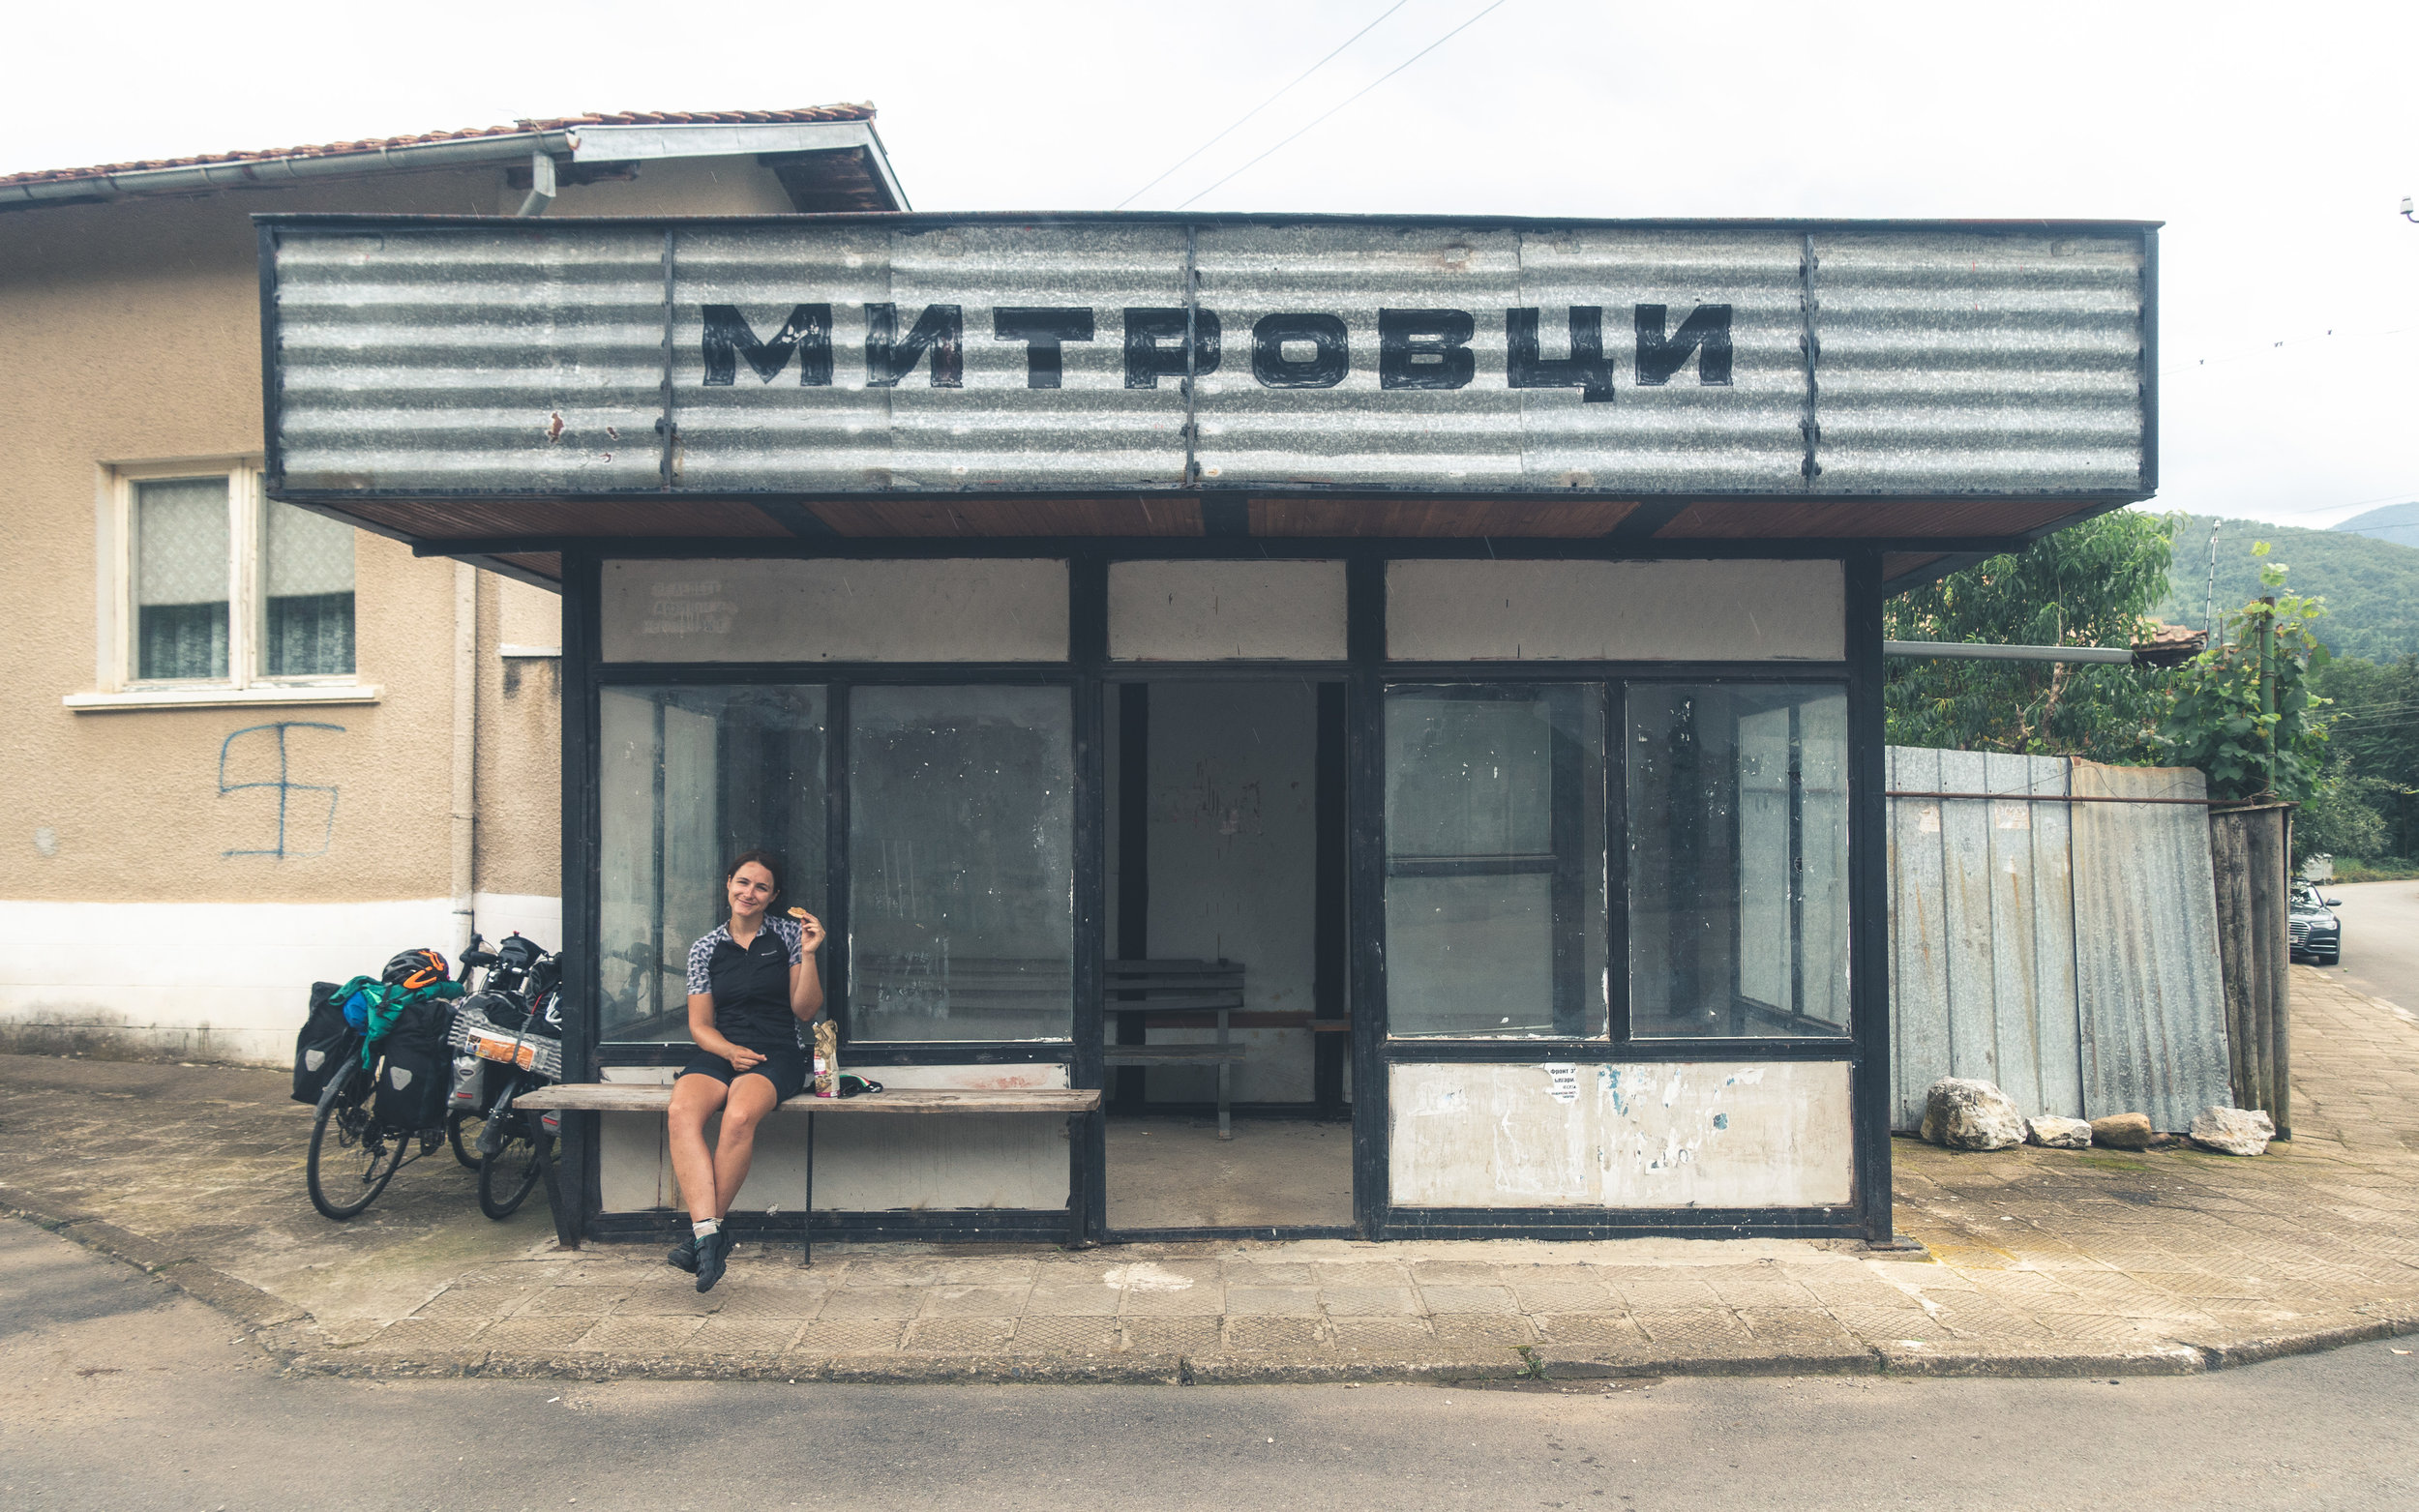 Bus stop lunches in rural Bulgaria!